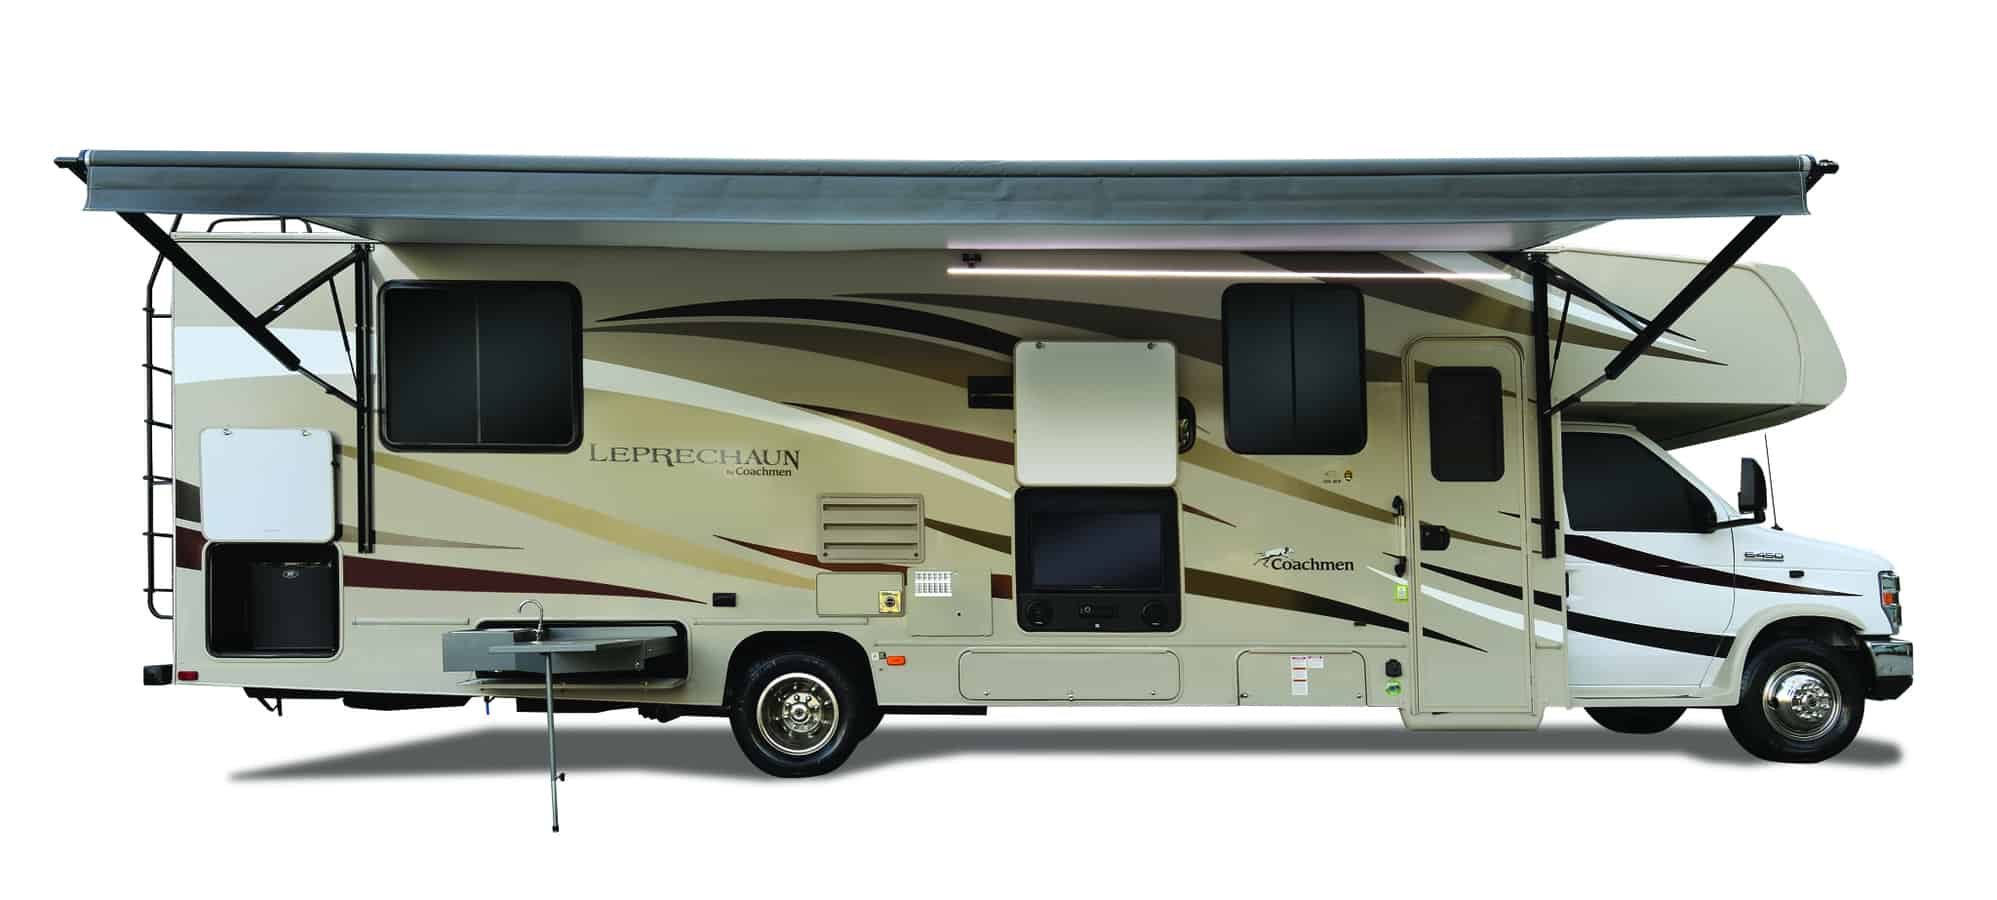 9 Excellent Small Motorhomes For Ultimate Mobility Camper Report